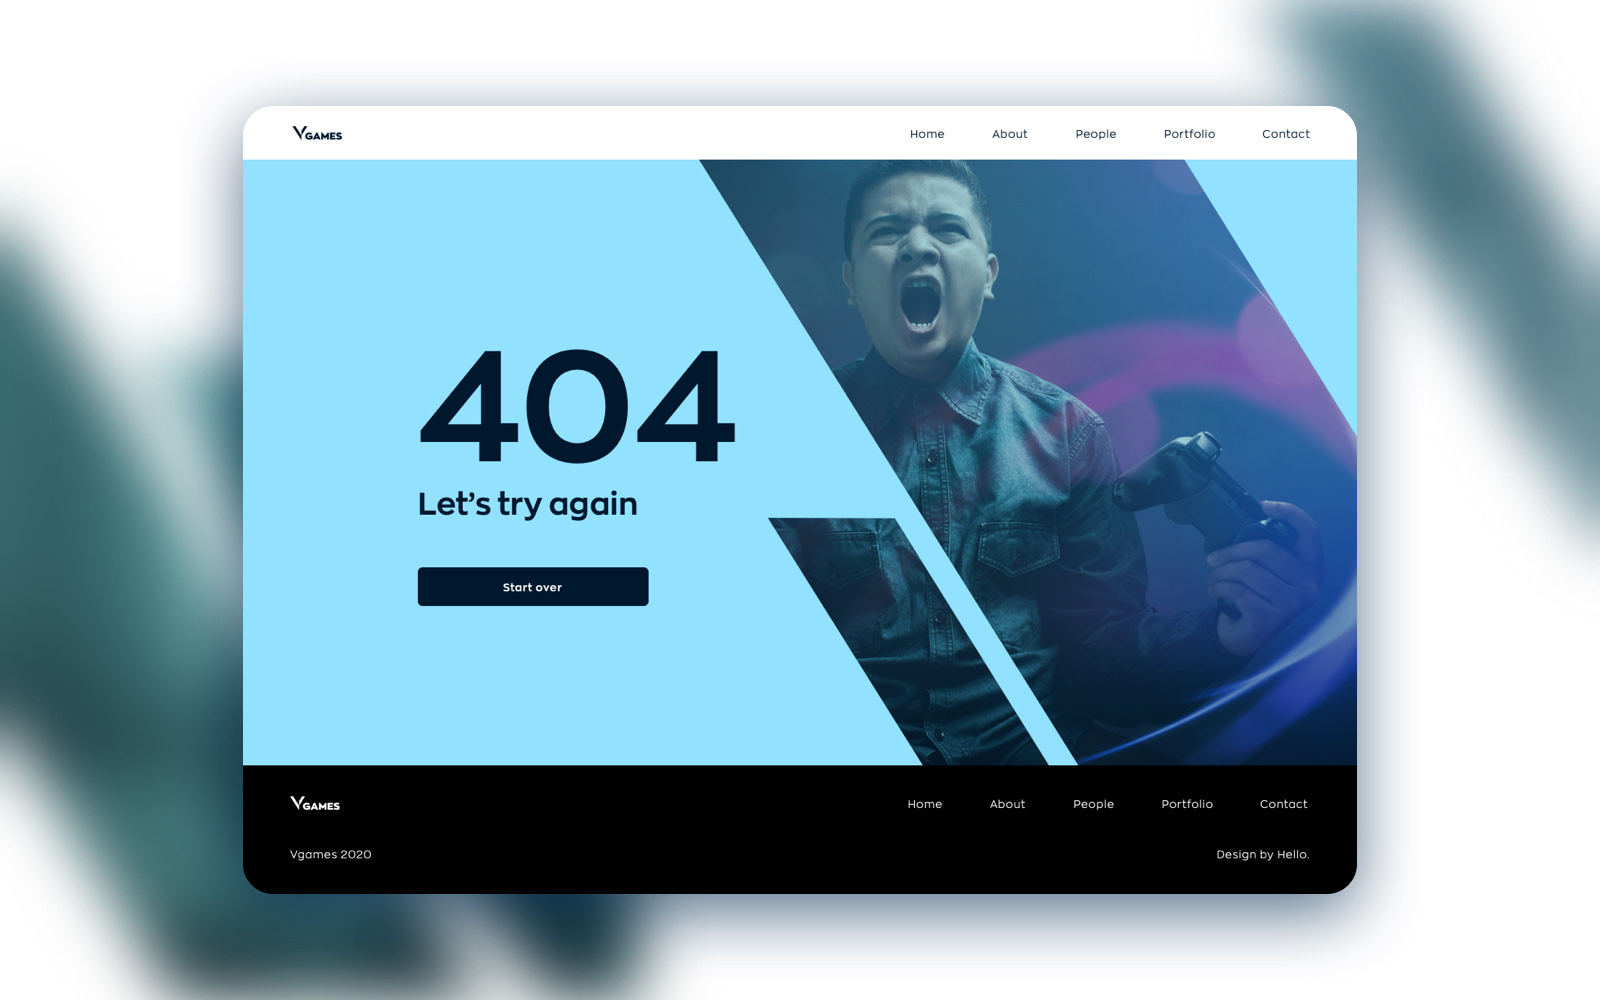 Vgames website UX UI design and development by hello.